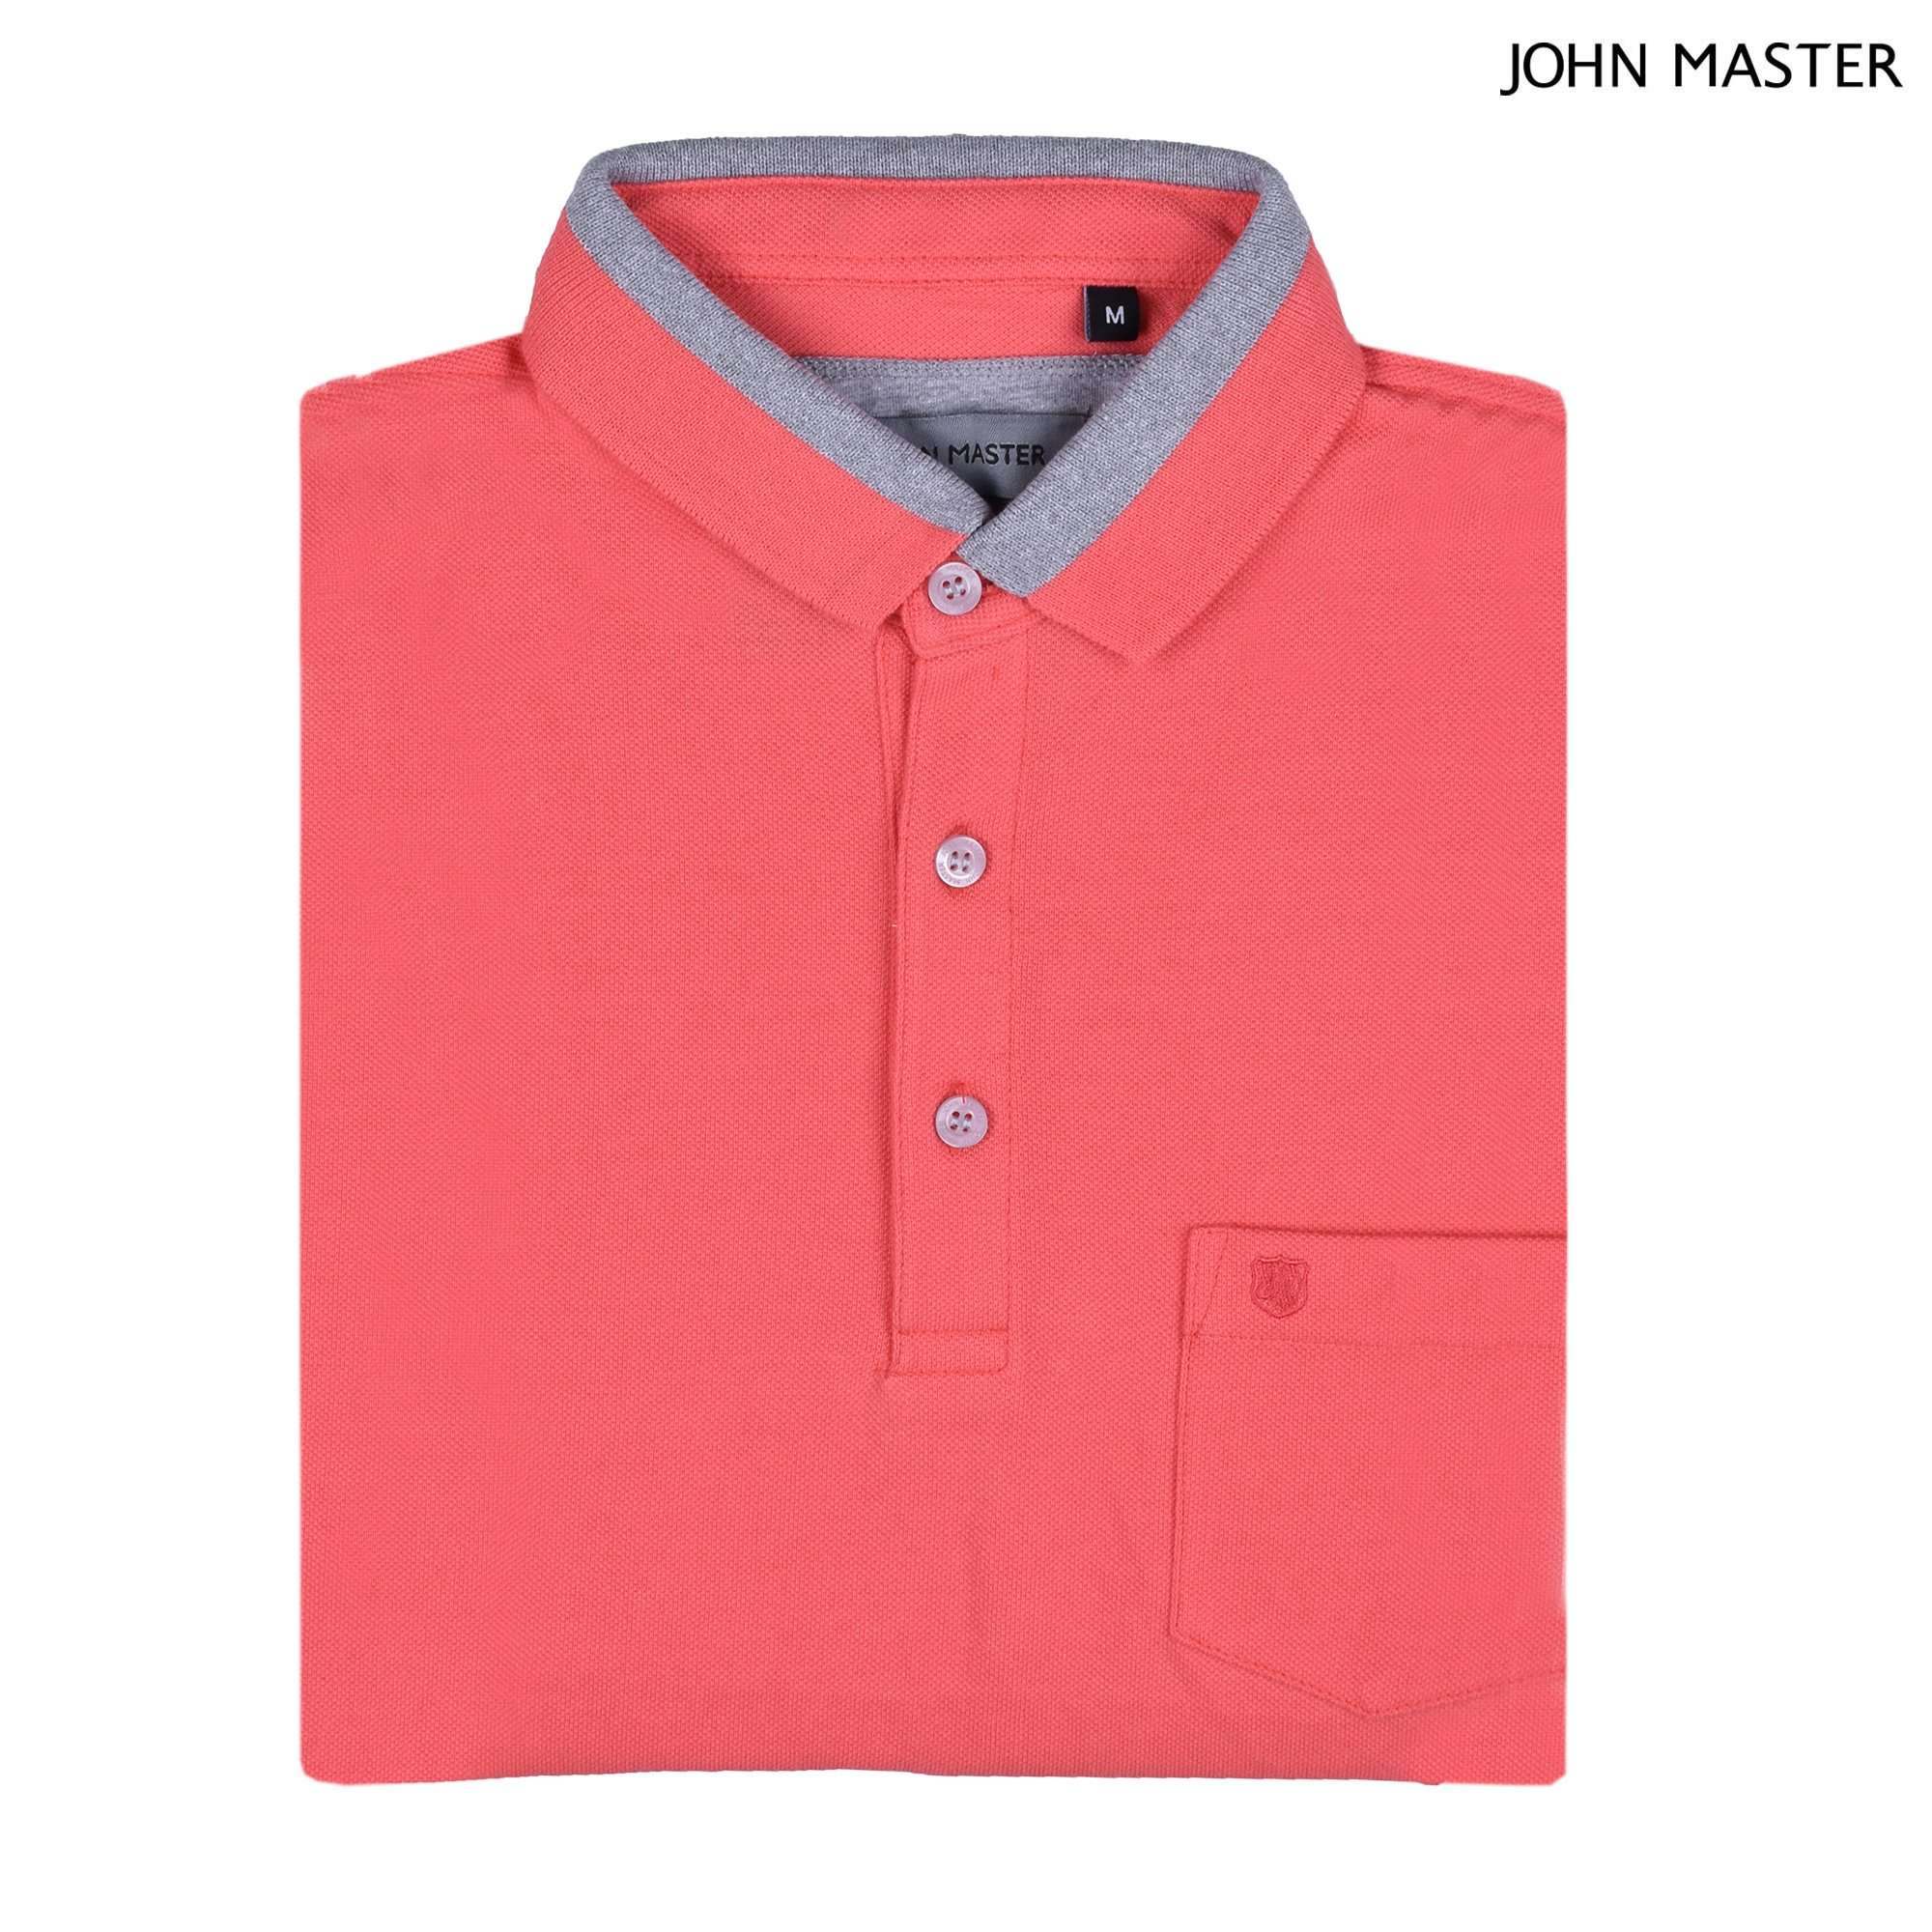 John Master Men Casual Tapered fit Polo Tee Orange 8287009-E5 : Buy John Master online at CMG.MY